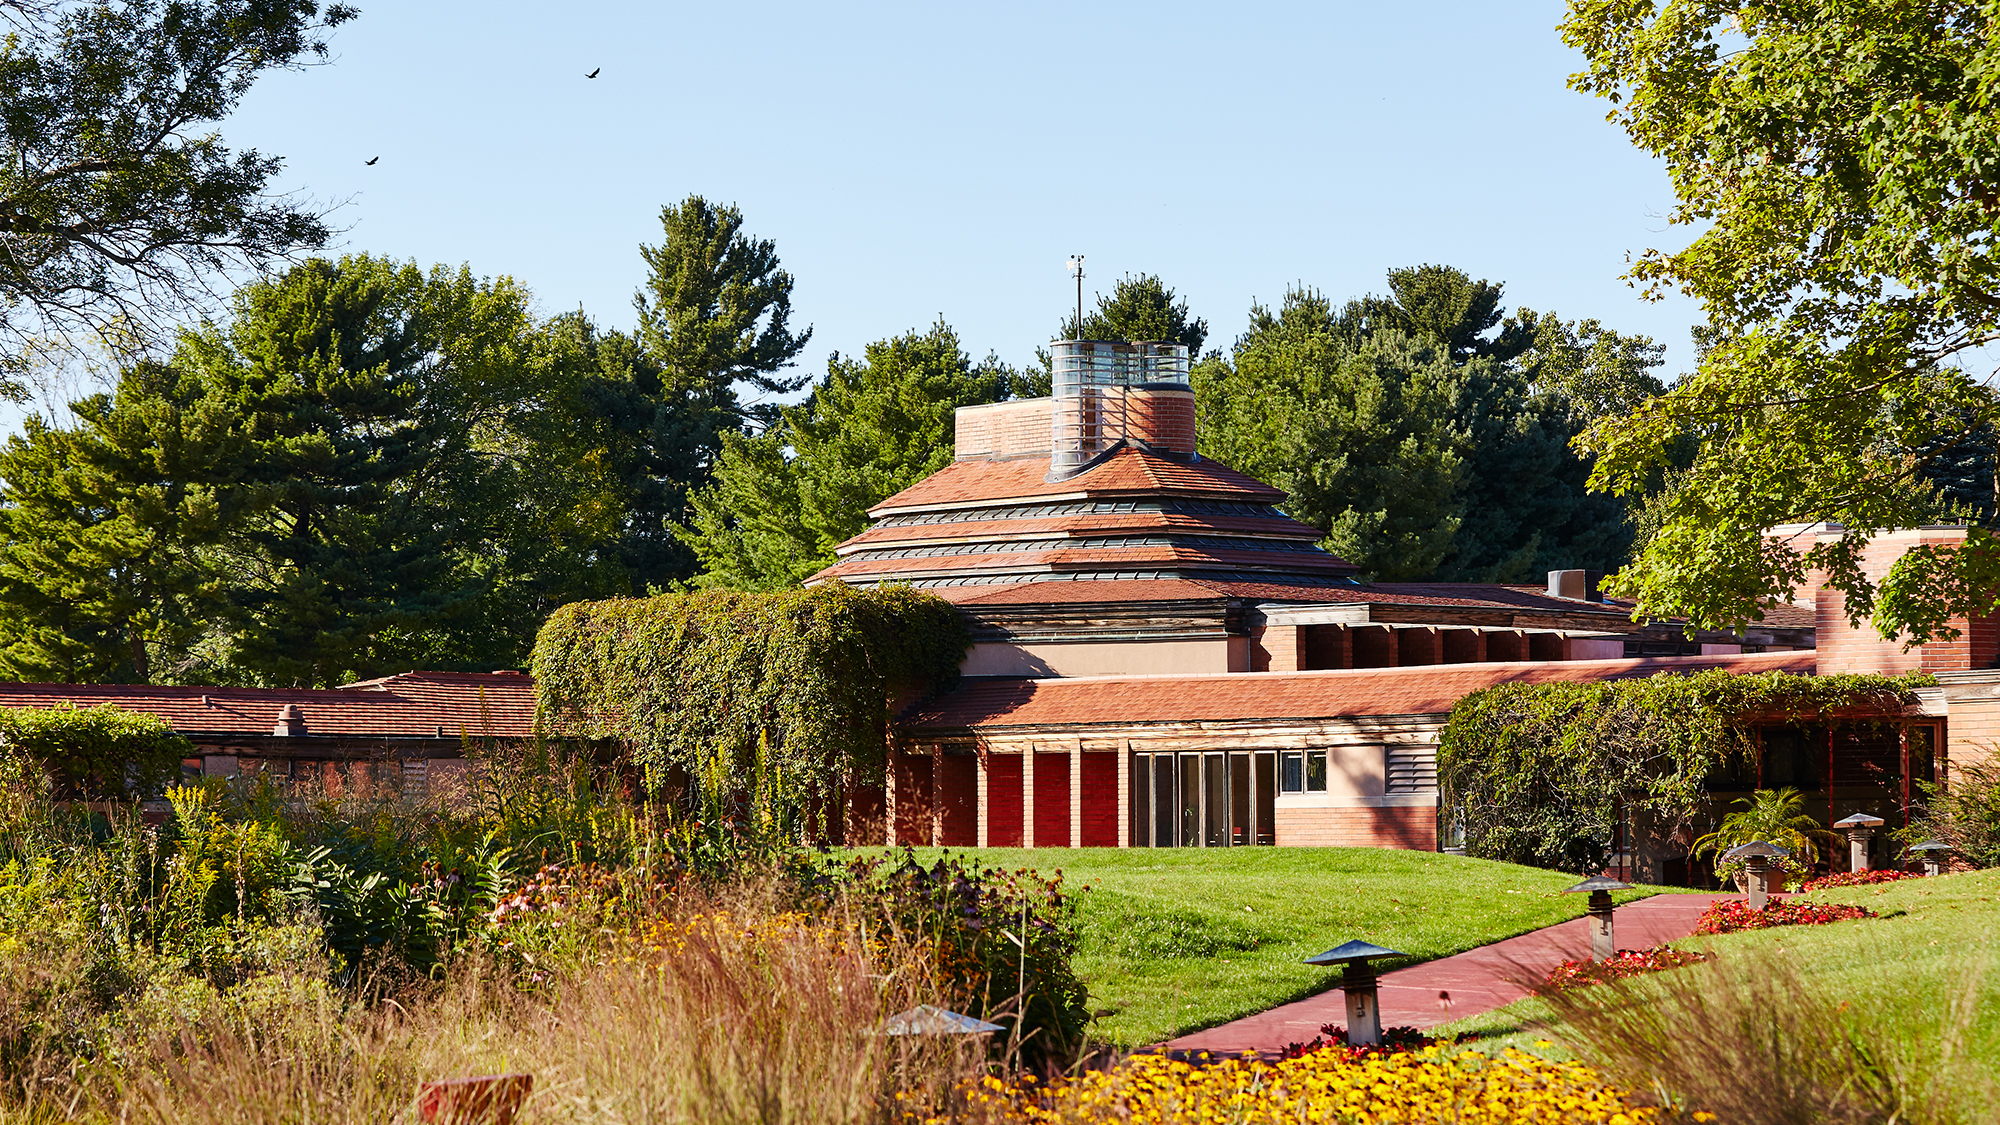 Lloyd Frank Wright Houses wingspread: frank lloyd wright's largest prairie-style house